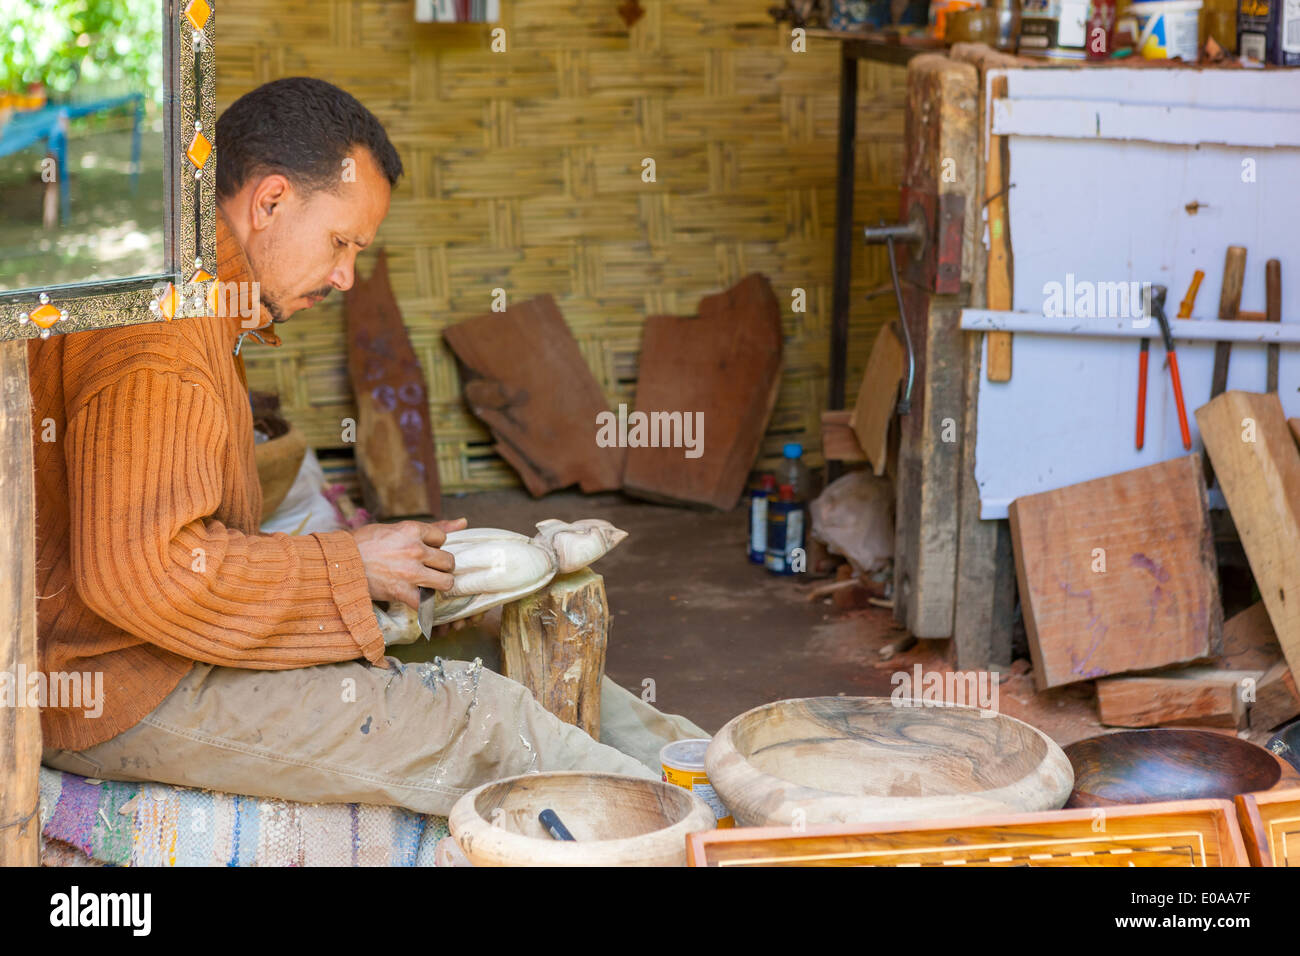 Craftsman making wooden souvenirs at the Ourika Valley, Setti-Fatma near Marrakesh, Morocco. - Stock Image